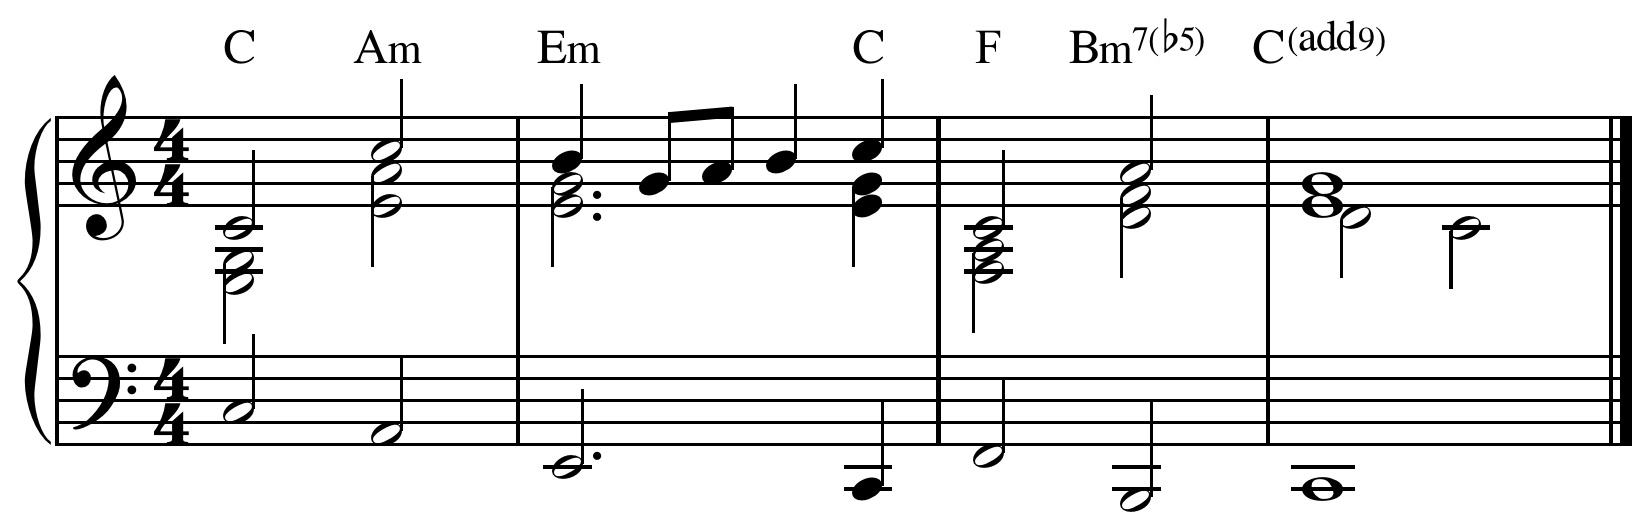 Over the Rainbow - chord symbols